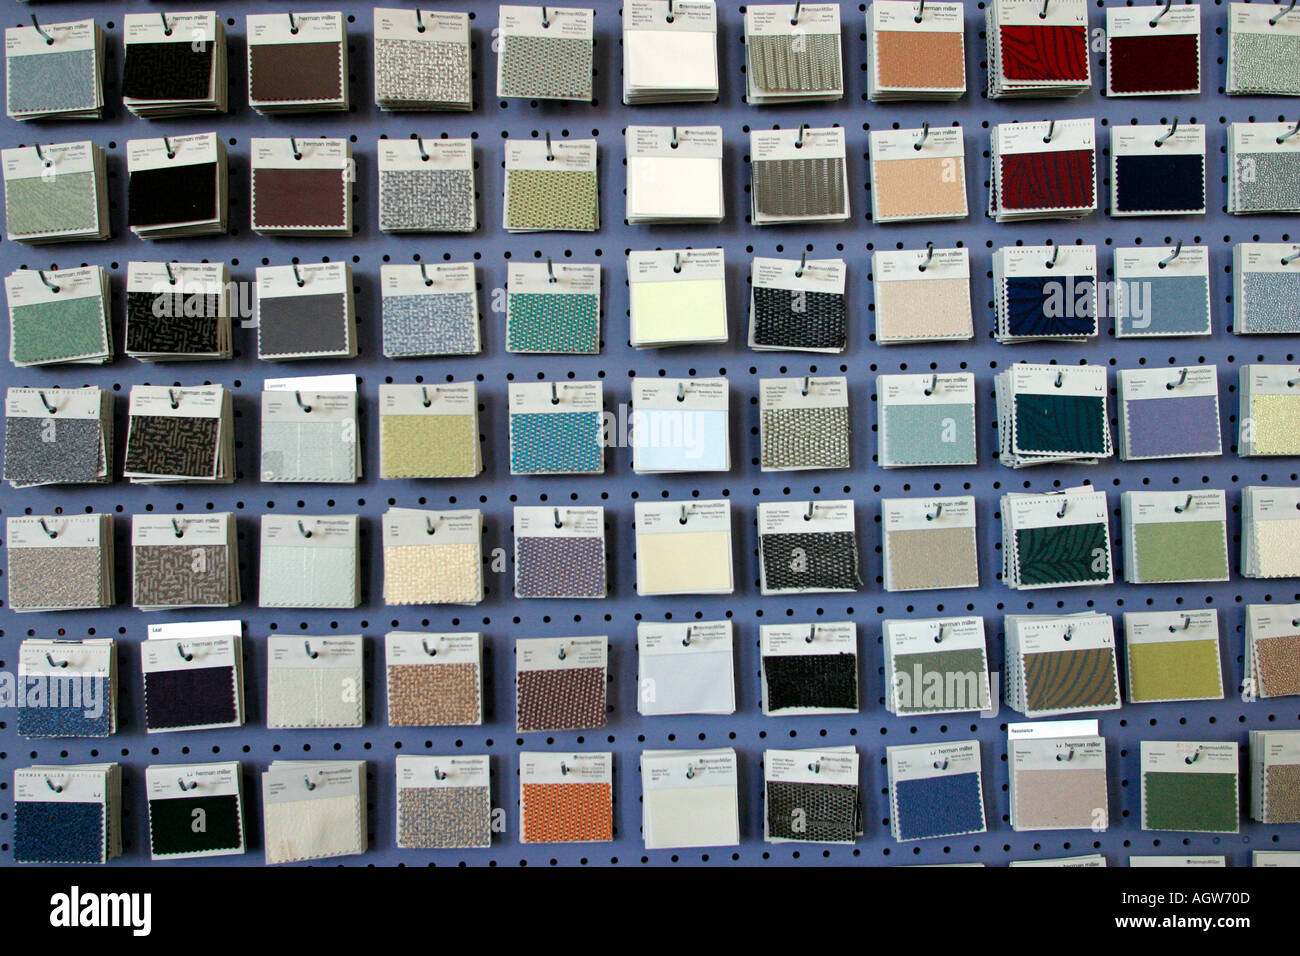 Fabric Swatches At Office Furniture Retailer New York New York   Stock Image